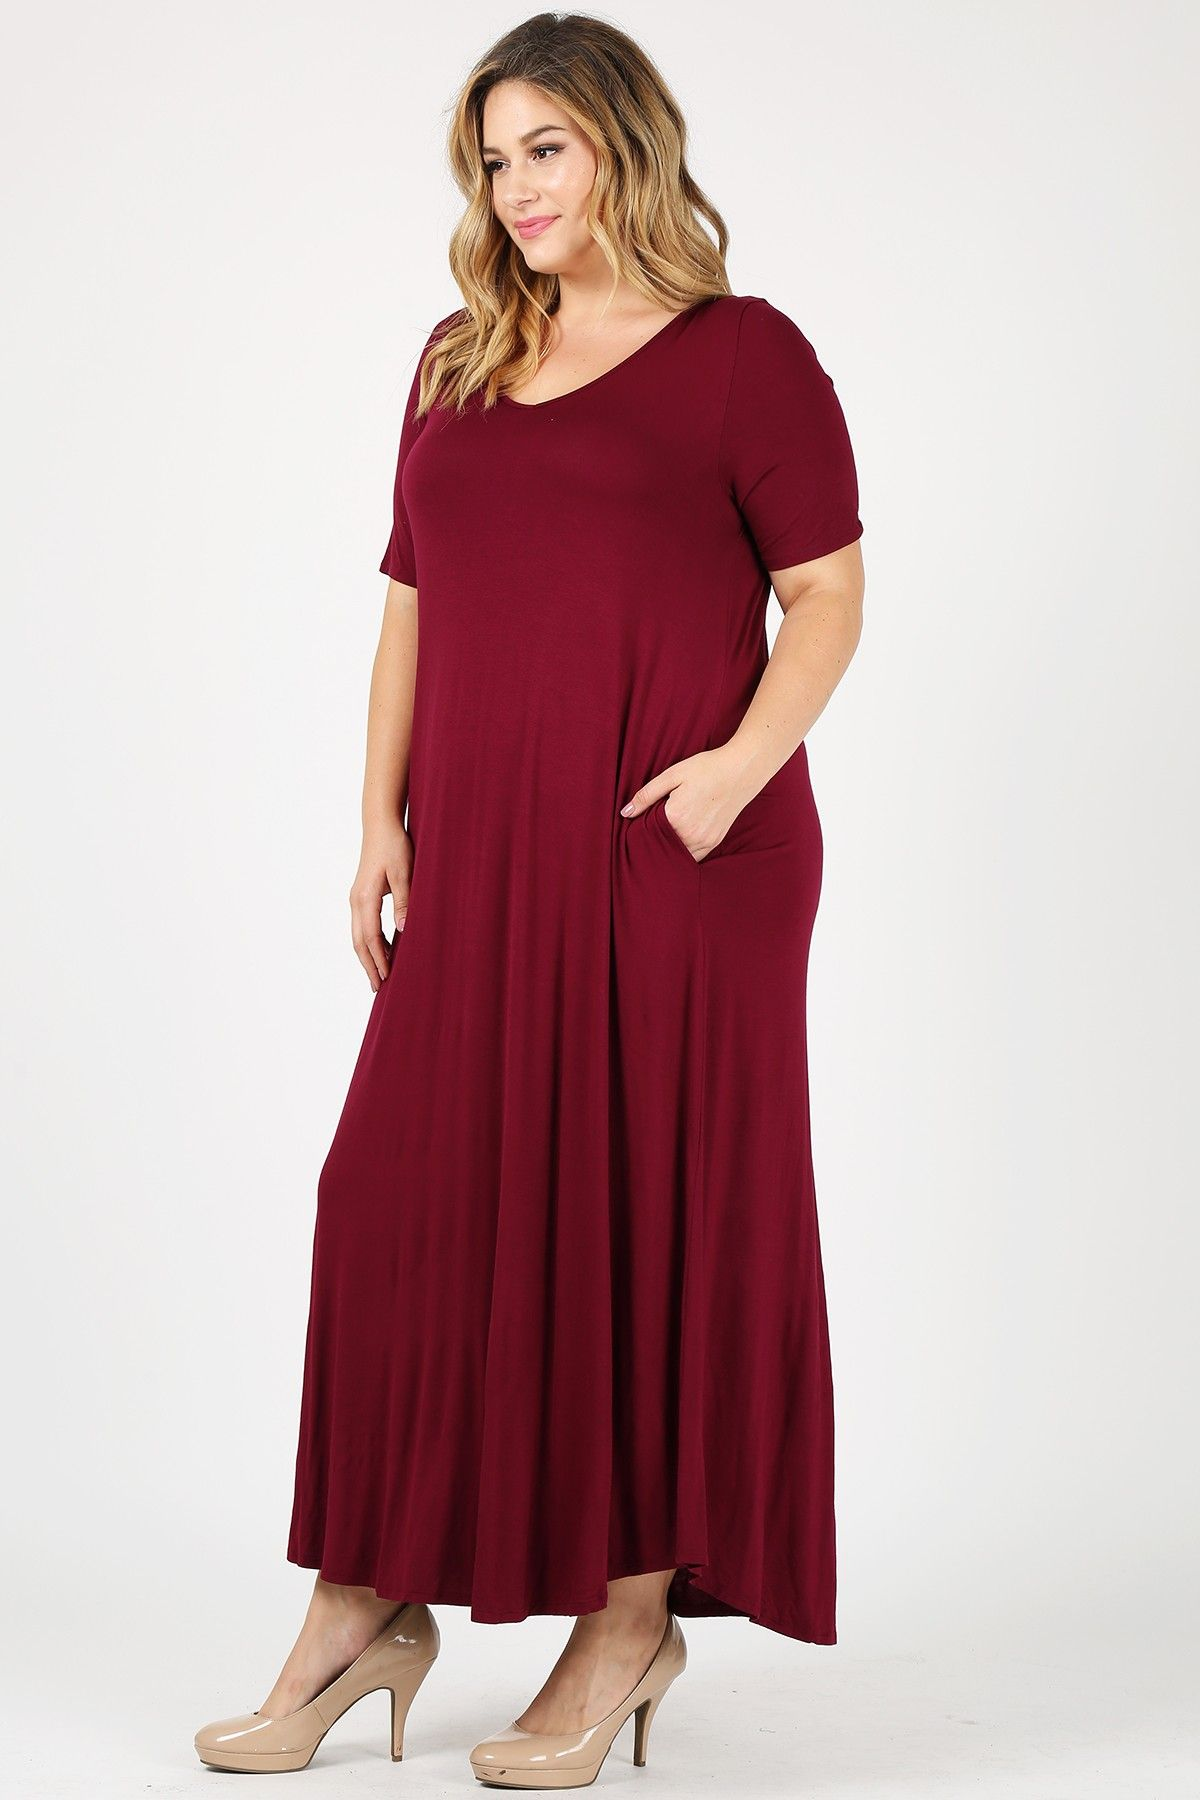 Sweet Lindsey Women Plus Size Maxi Dress With Side Pockets Long Plus Size Casual Solid Color Casual Dress Walmart Com Cheap Maxi Dresses Summer Plus Size Fashion Dresses Cheap Maxi Dresses [ 1800 x 1200 Pixel ]